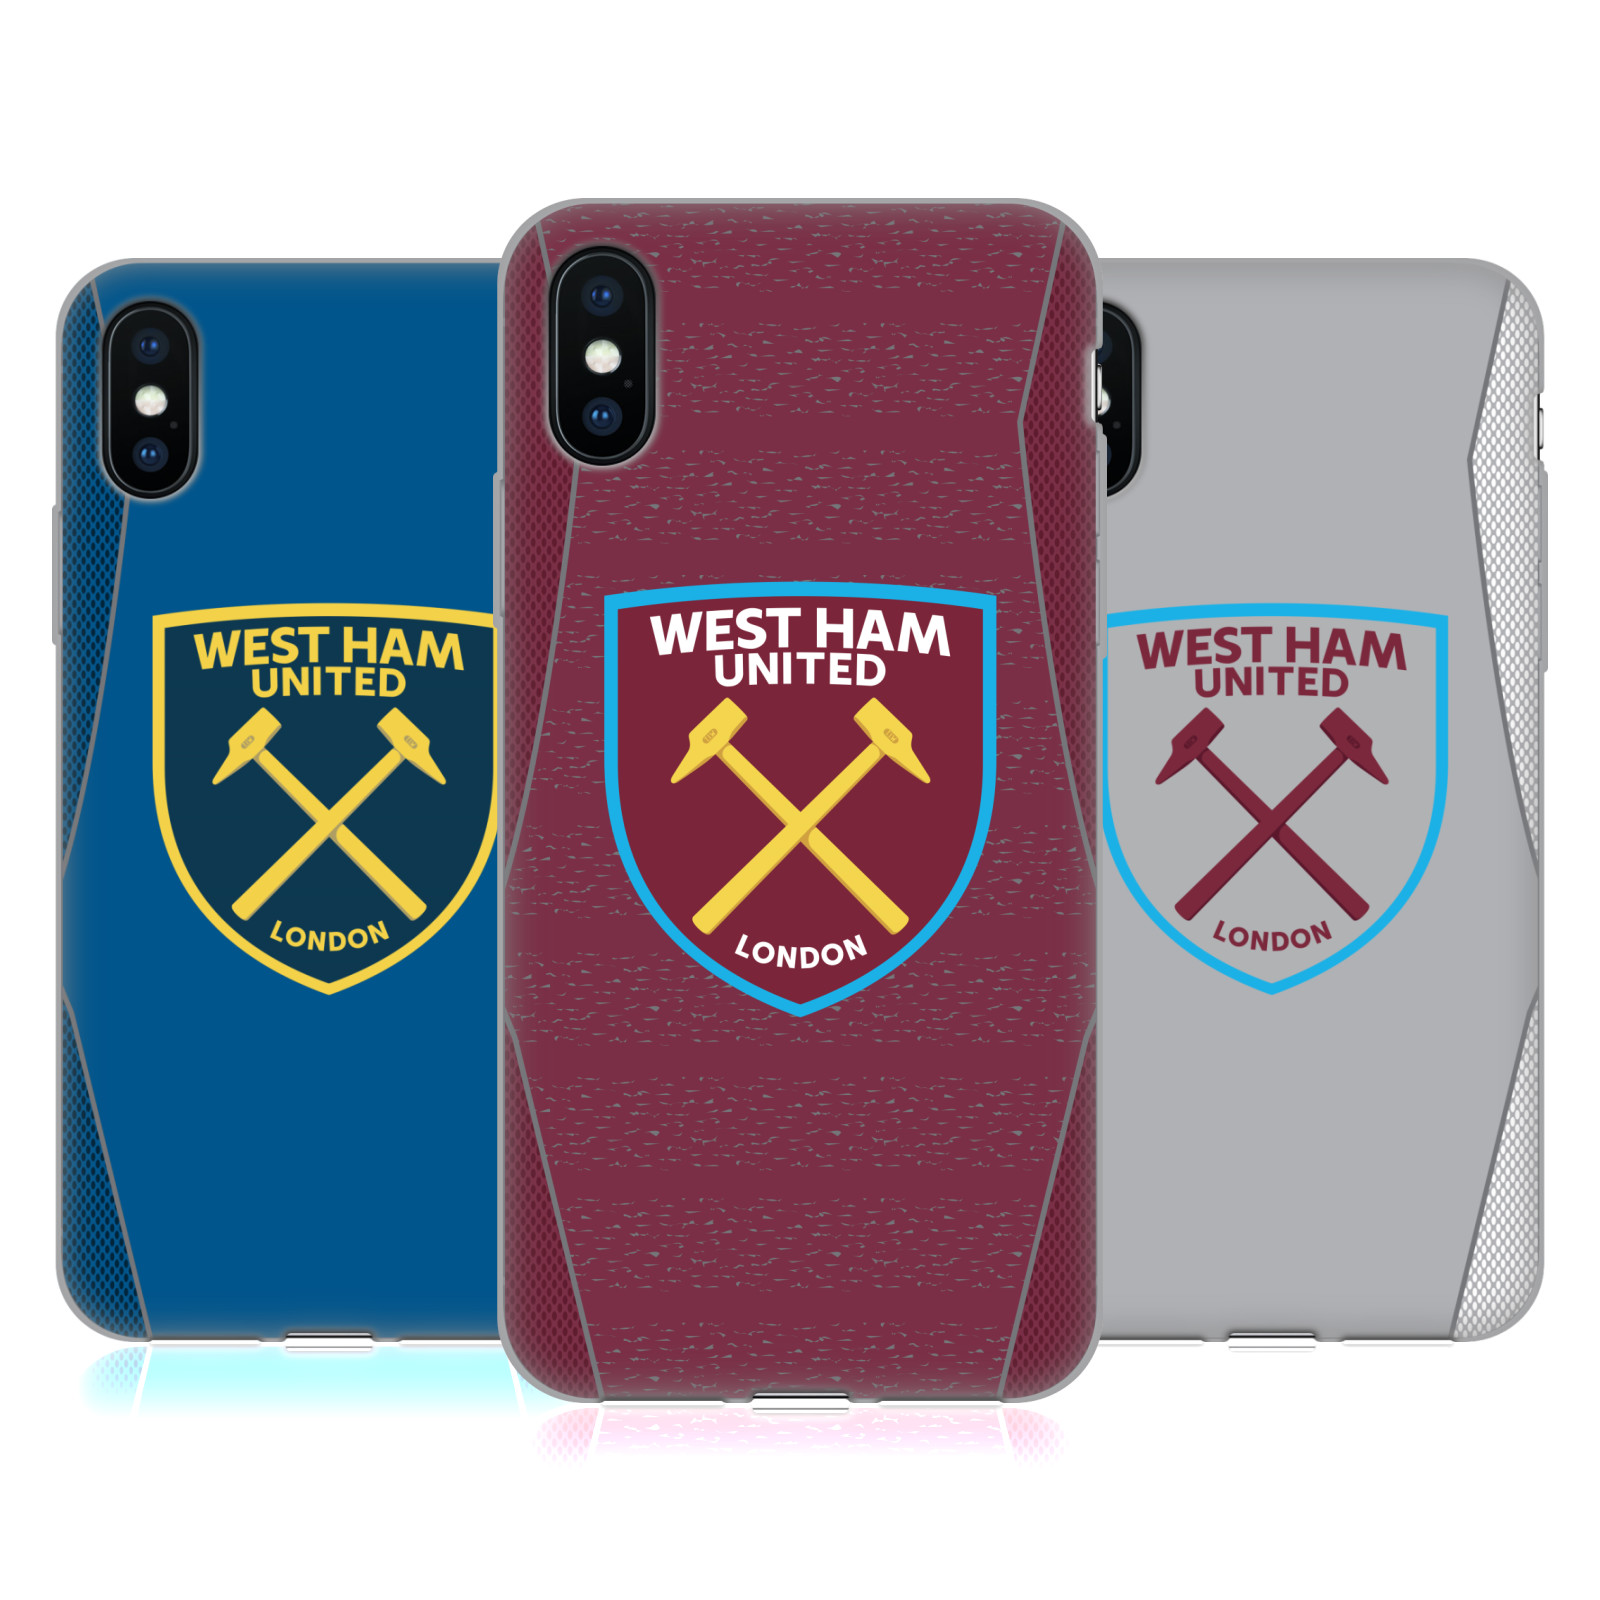 West Ham United FC 2018/19 Crest Kit